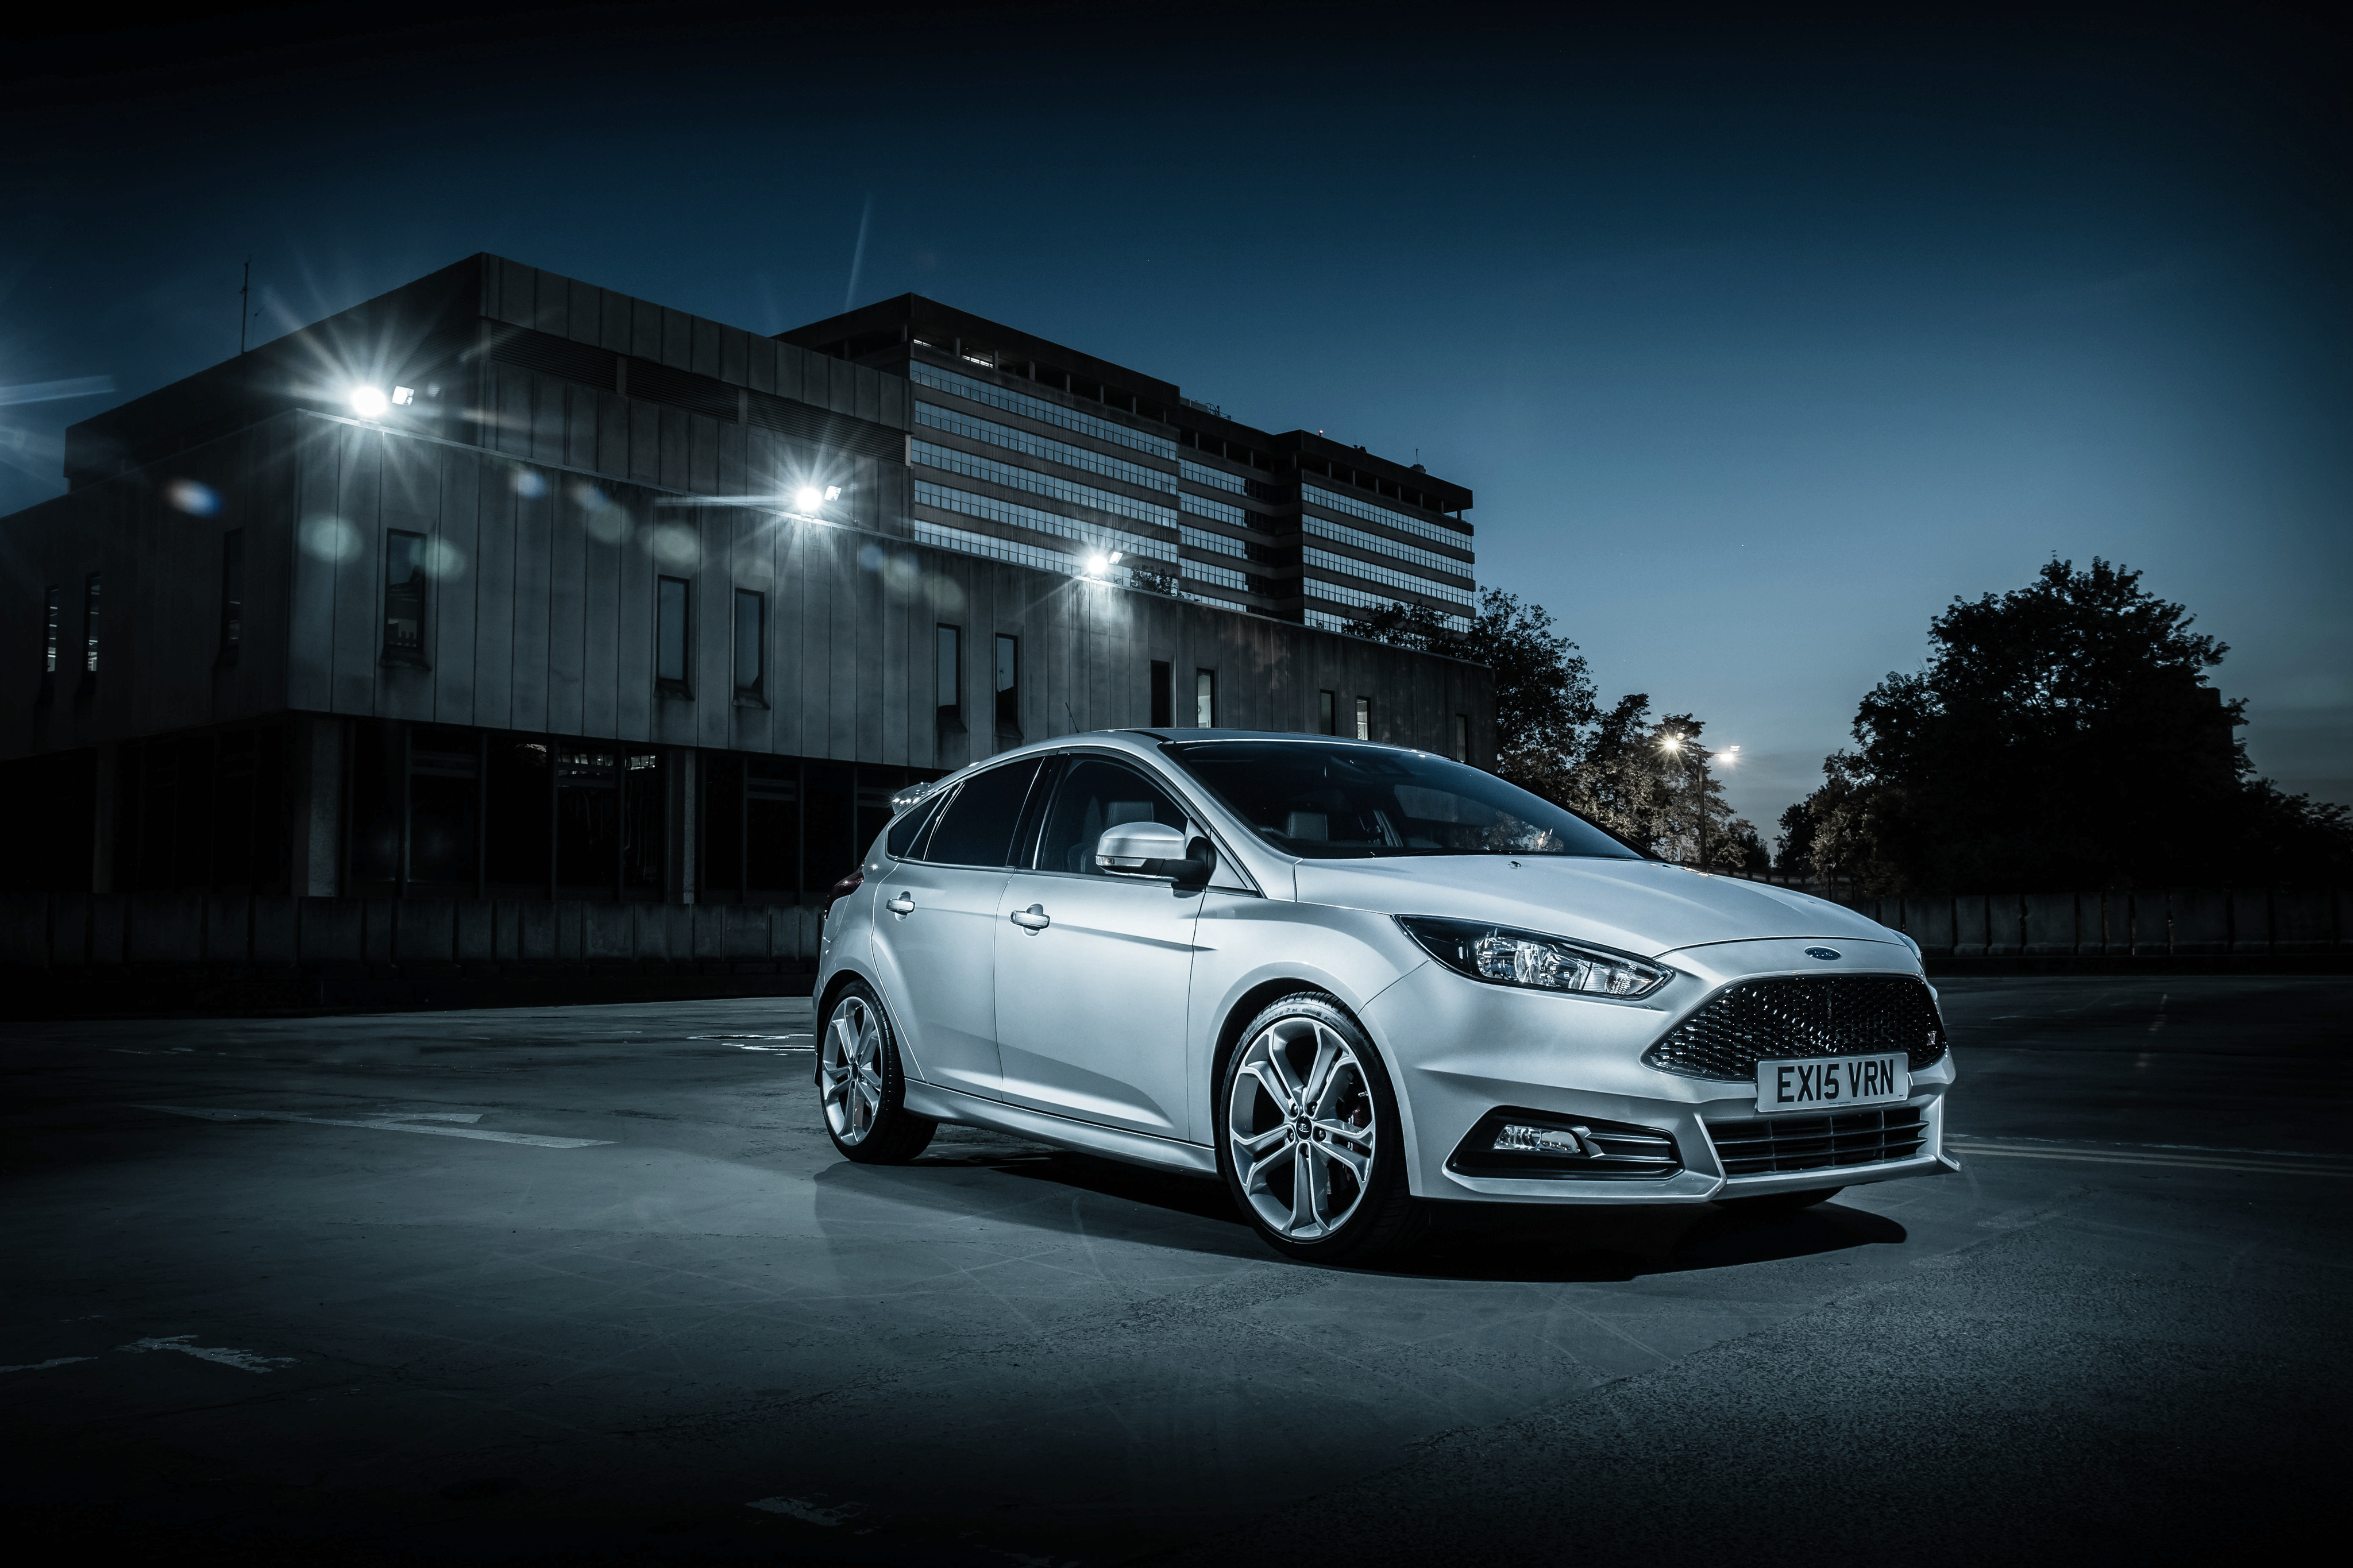 Ford Focus Wallpapers, Pictures, Images